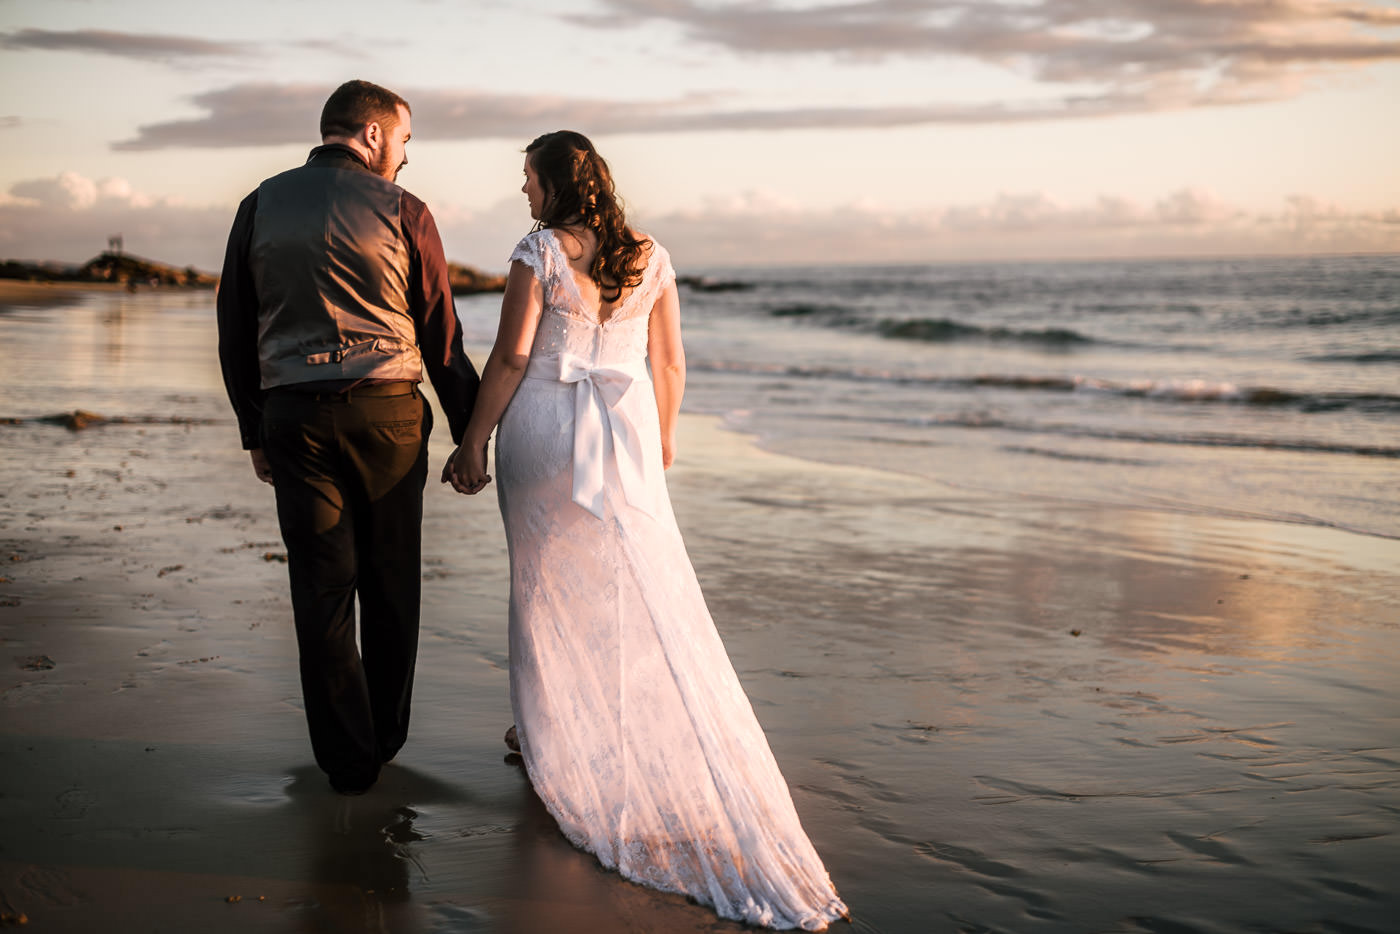 ...The more wonderfully romantic elopement photographs you'll get. And look at that gorgeous light! This is why sunset is always the best time for photographs.